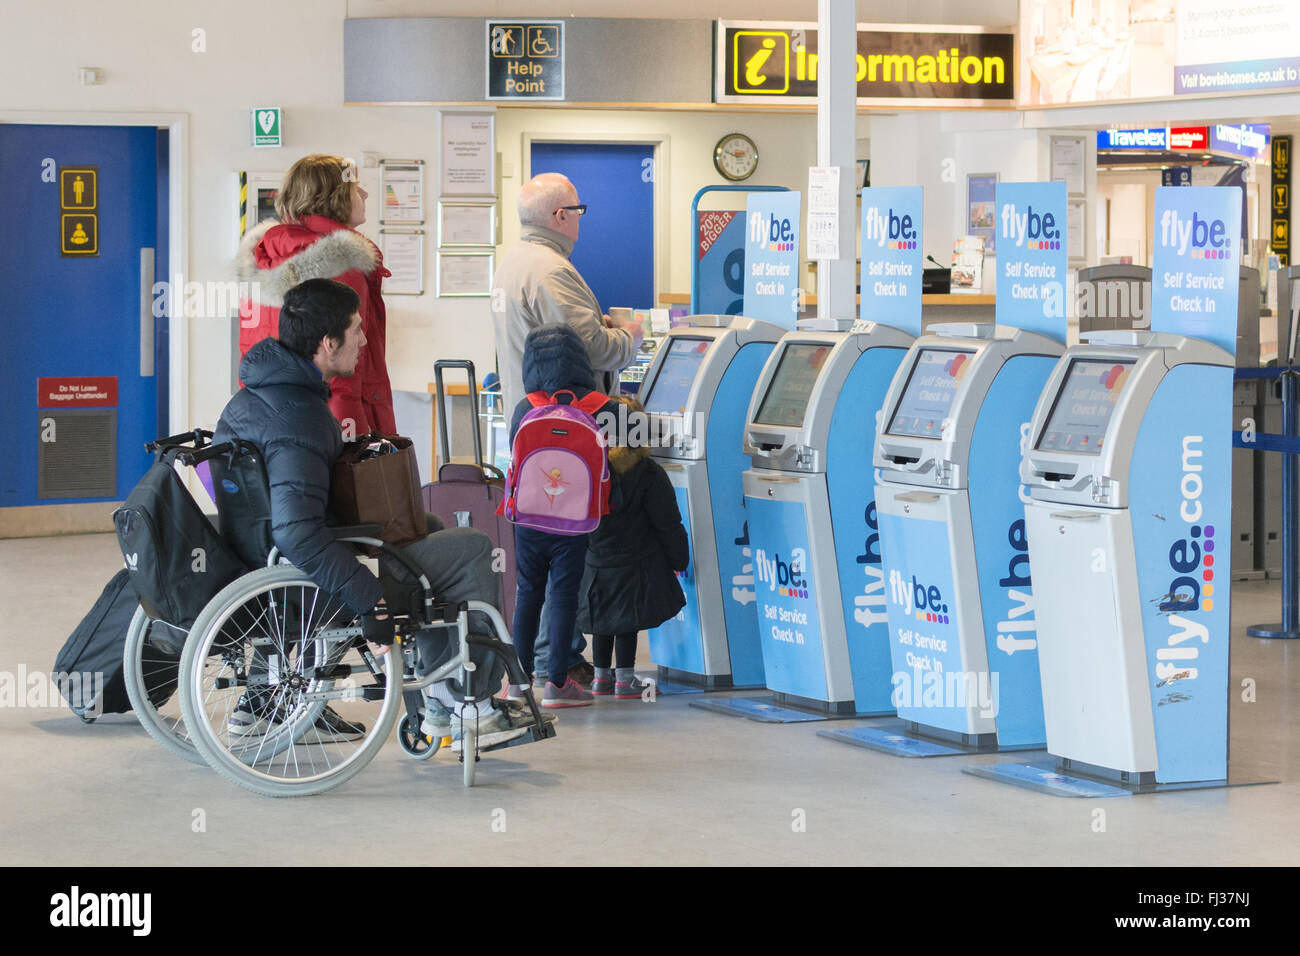 passengers using Flybe self service check-in desks kiosks at Exeter airport, England, UK - Stock Image